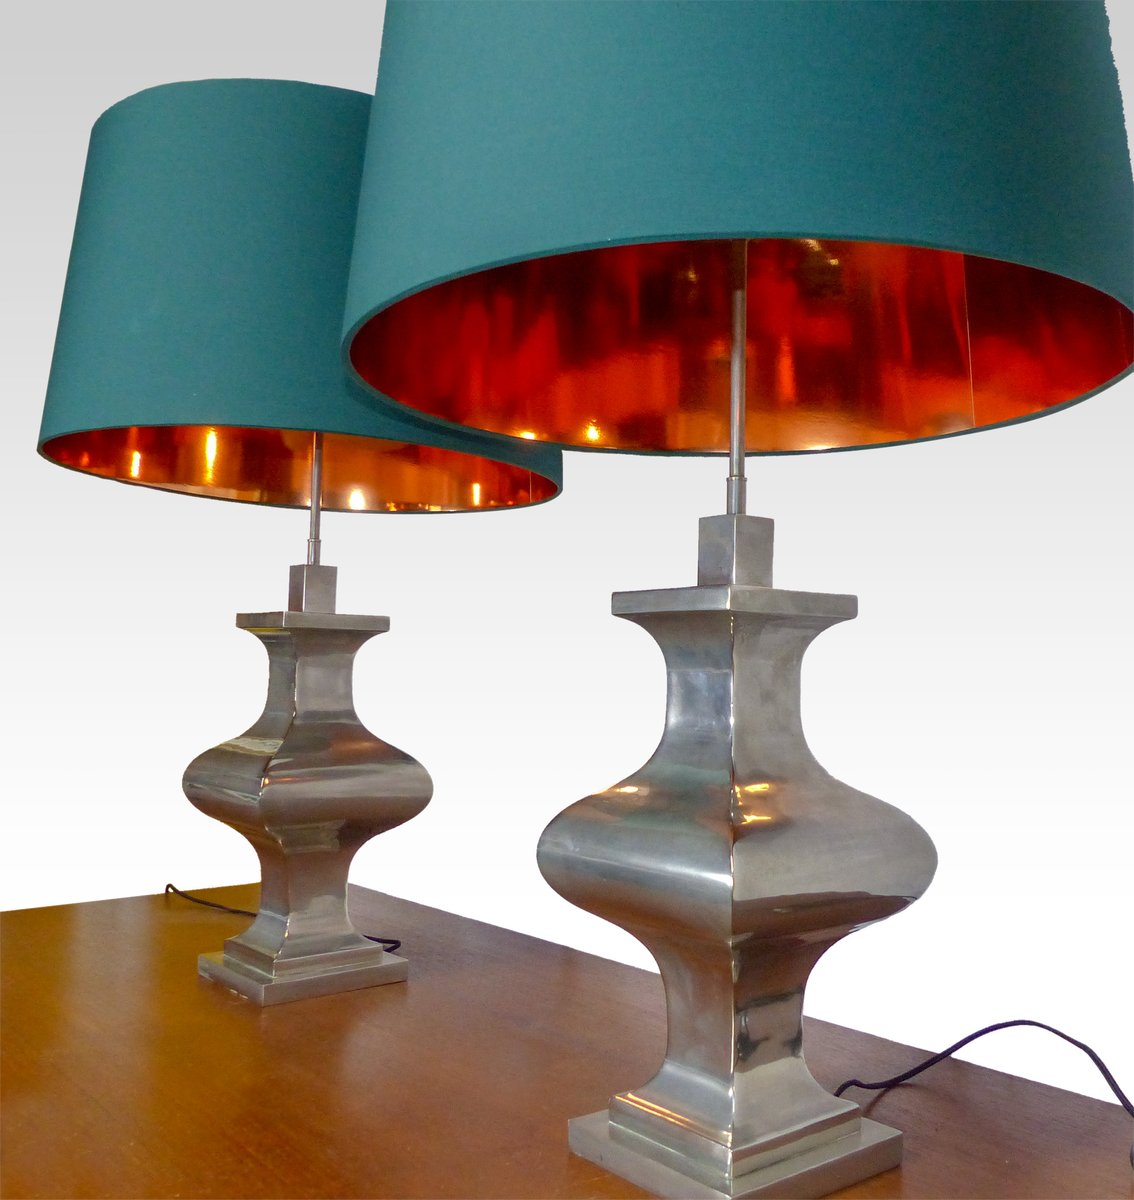 Antique Style Table Lamps 1970s Set Of 2 For Sale At Pamono